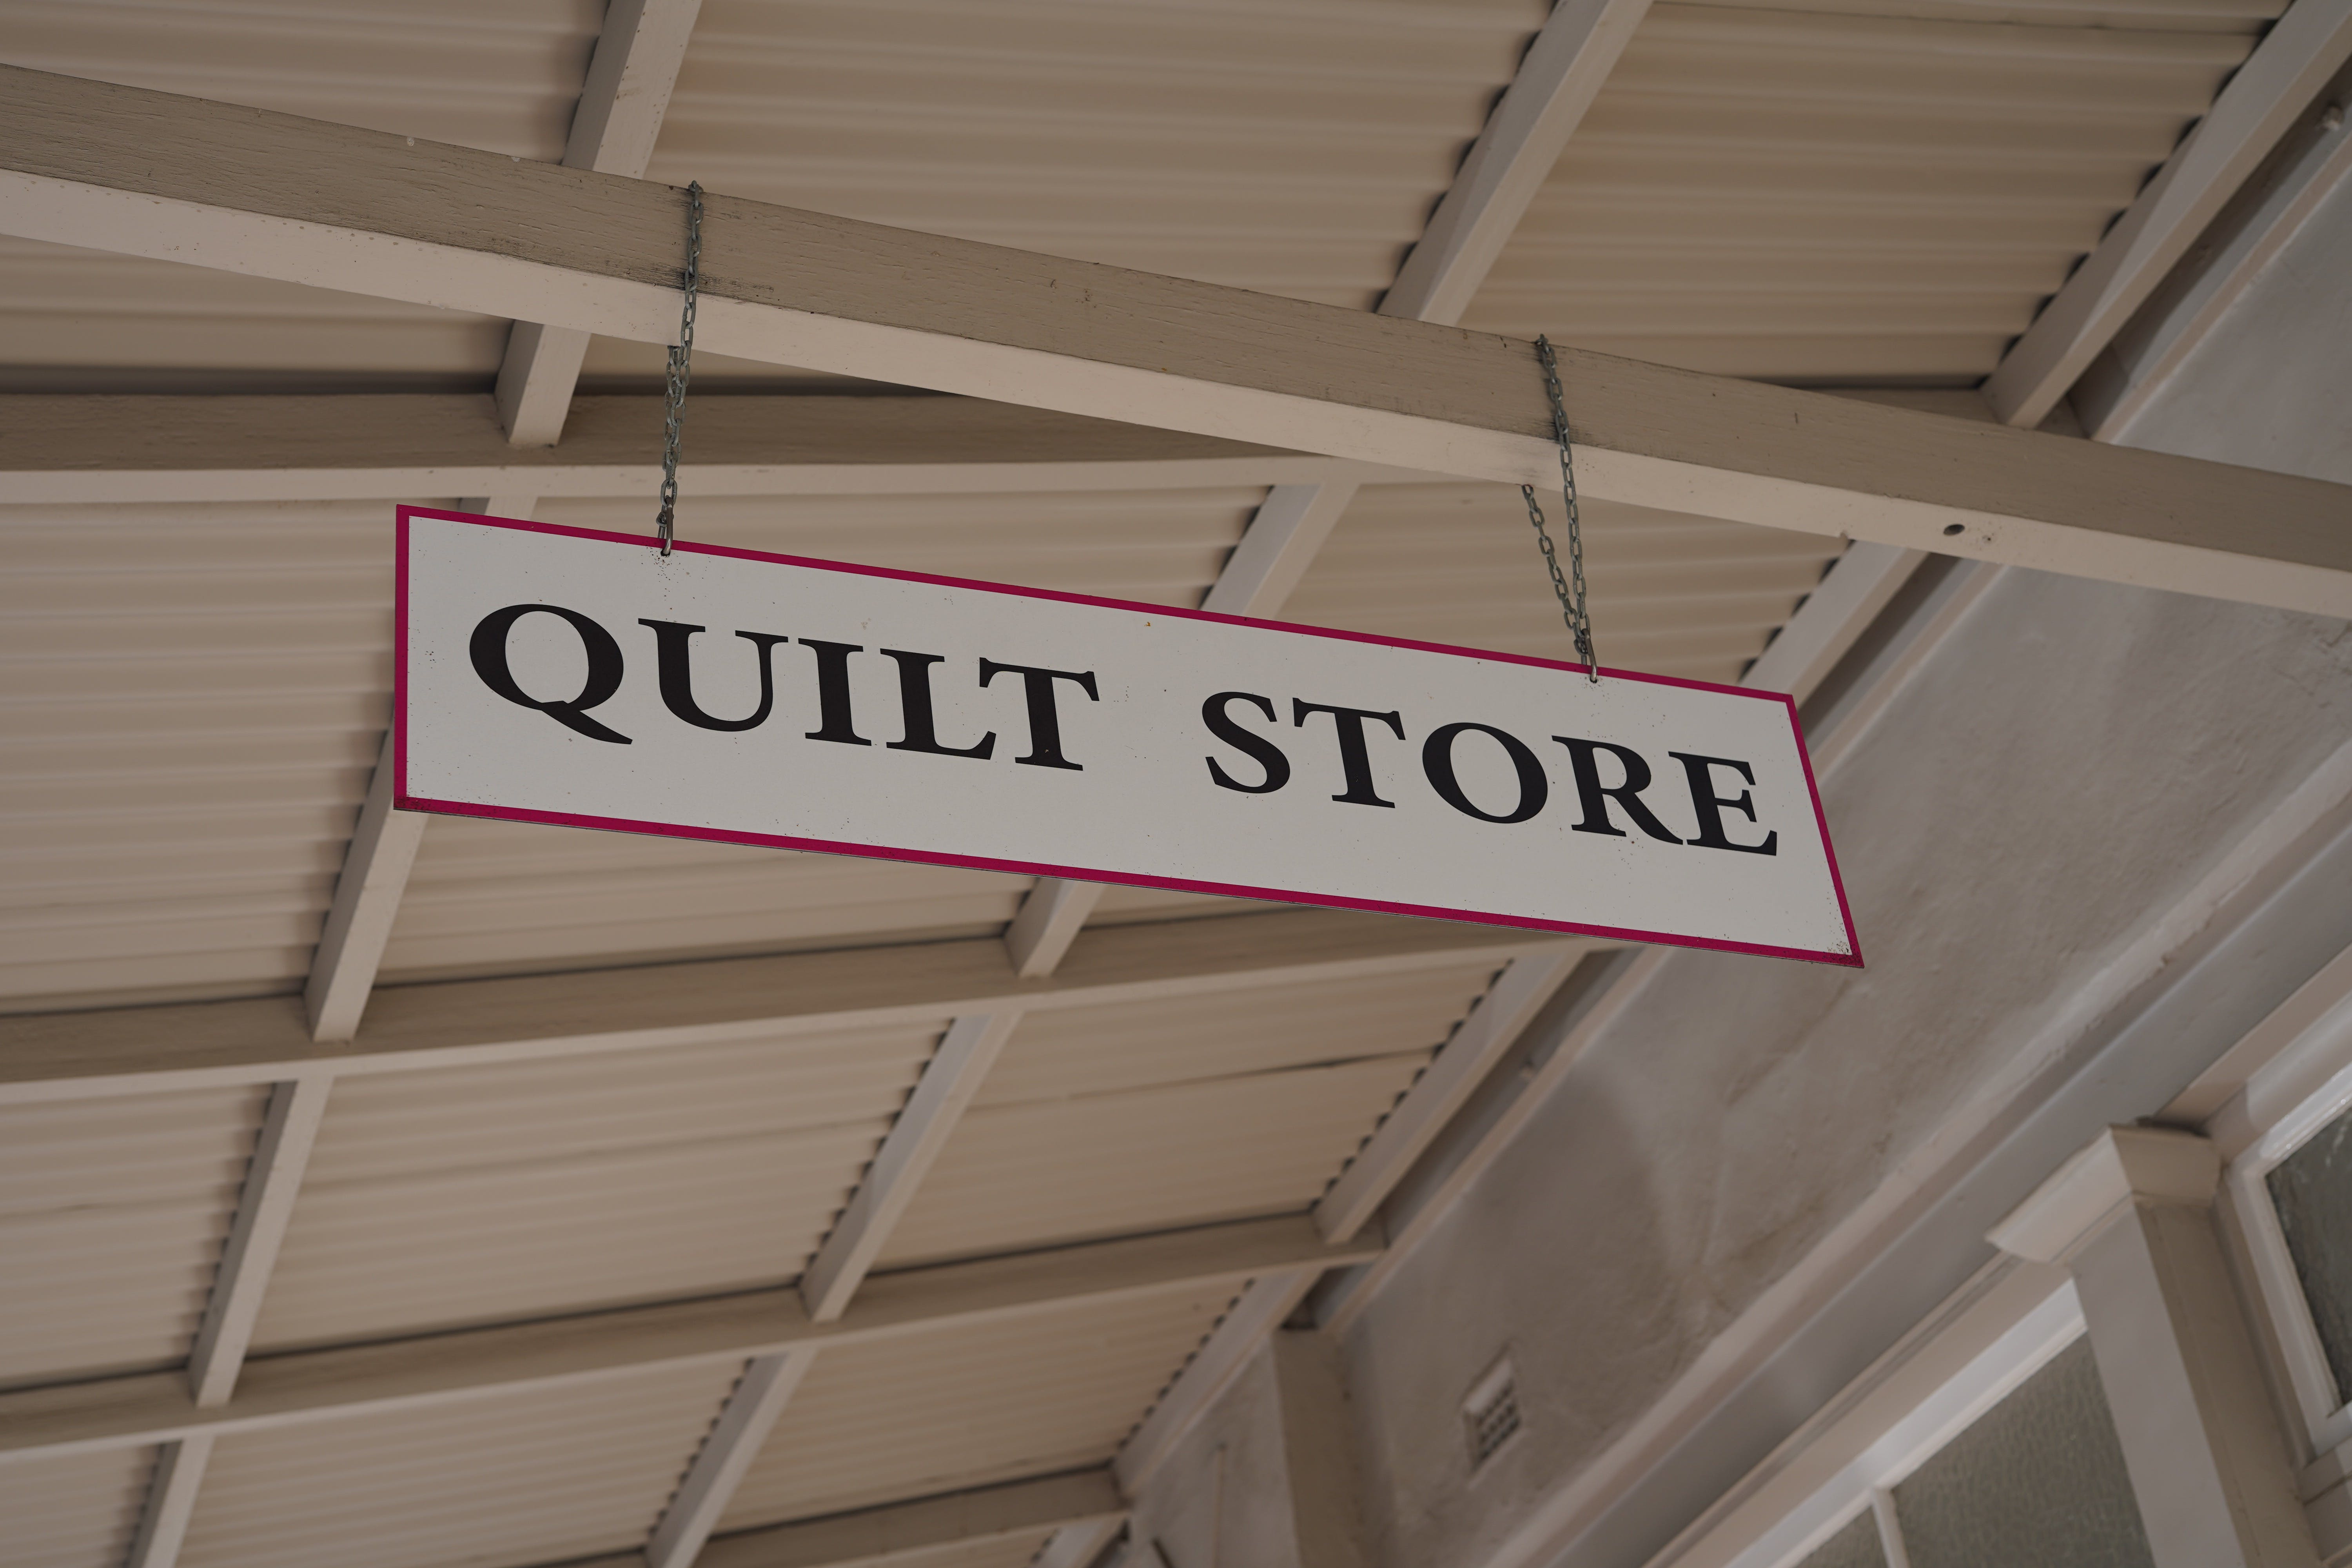 The Braidwood Quilt Store